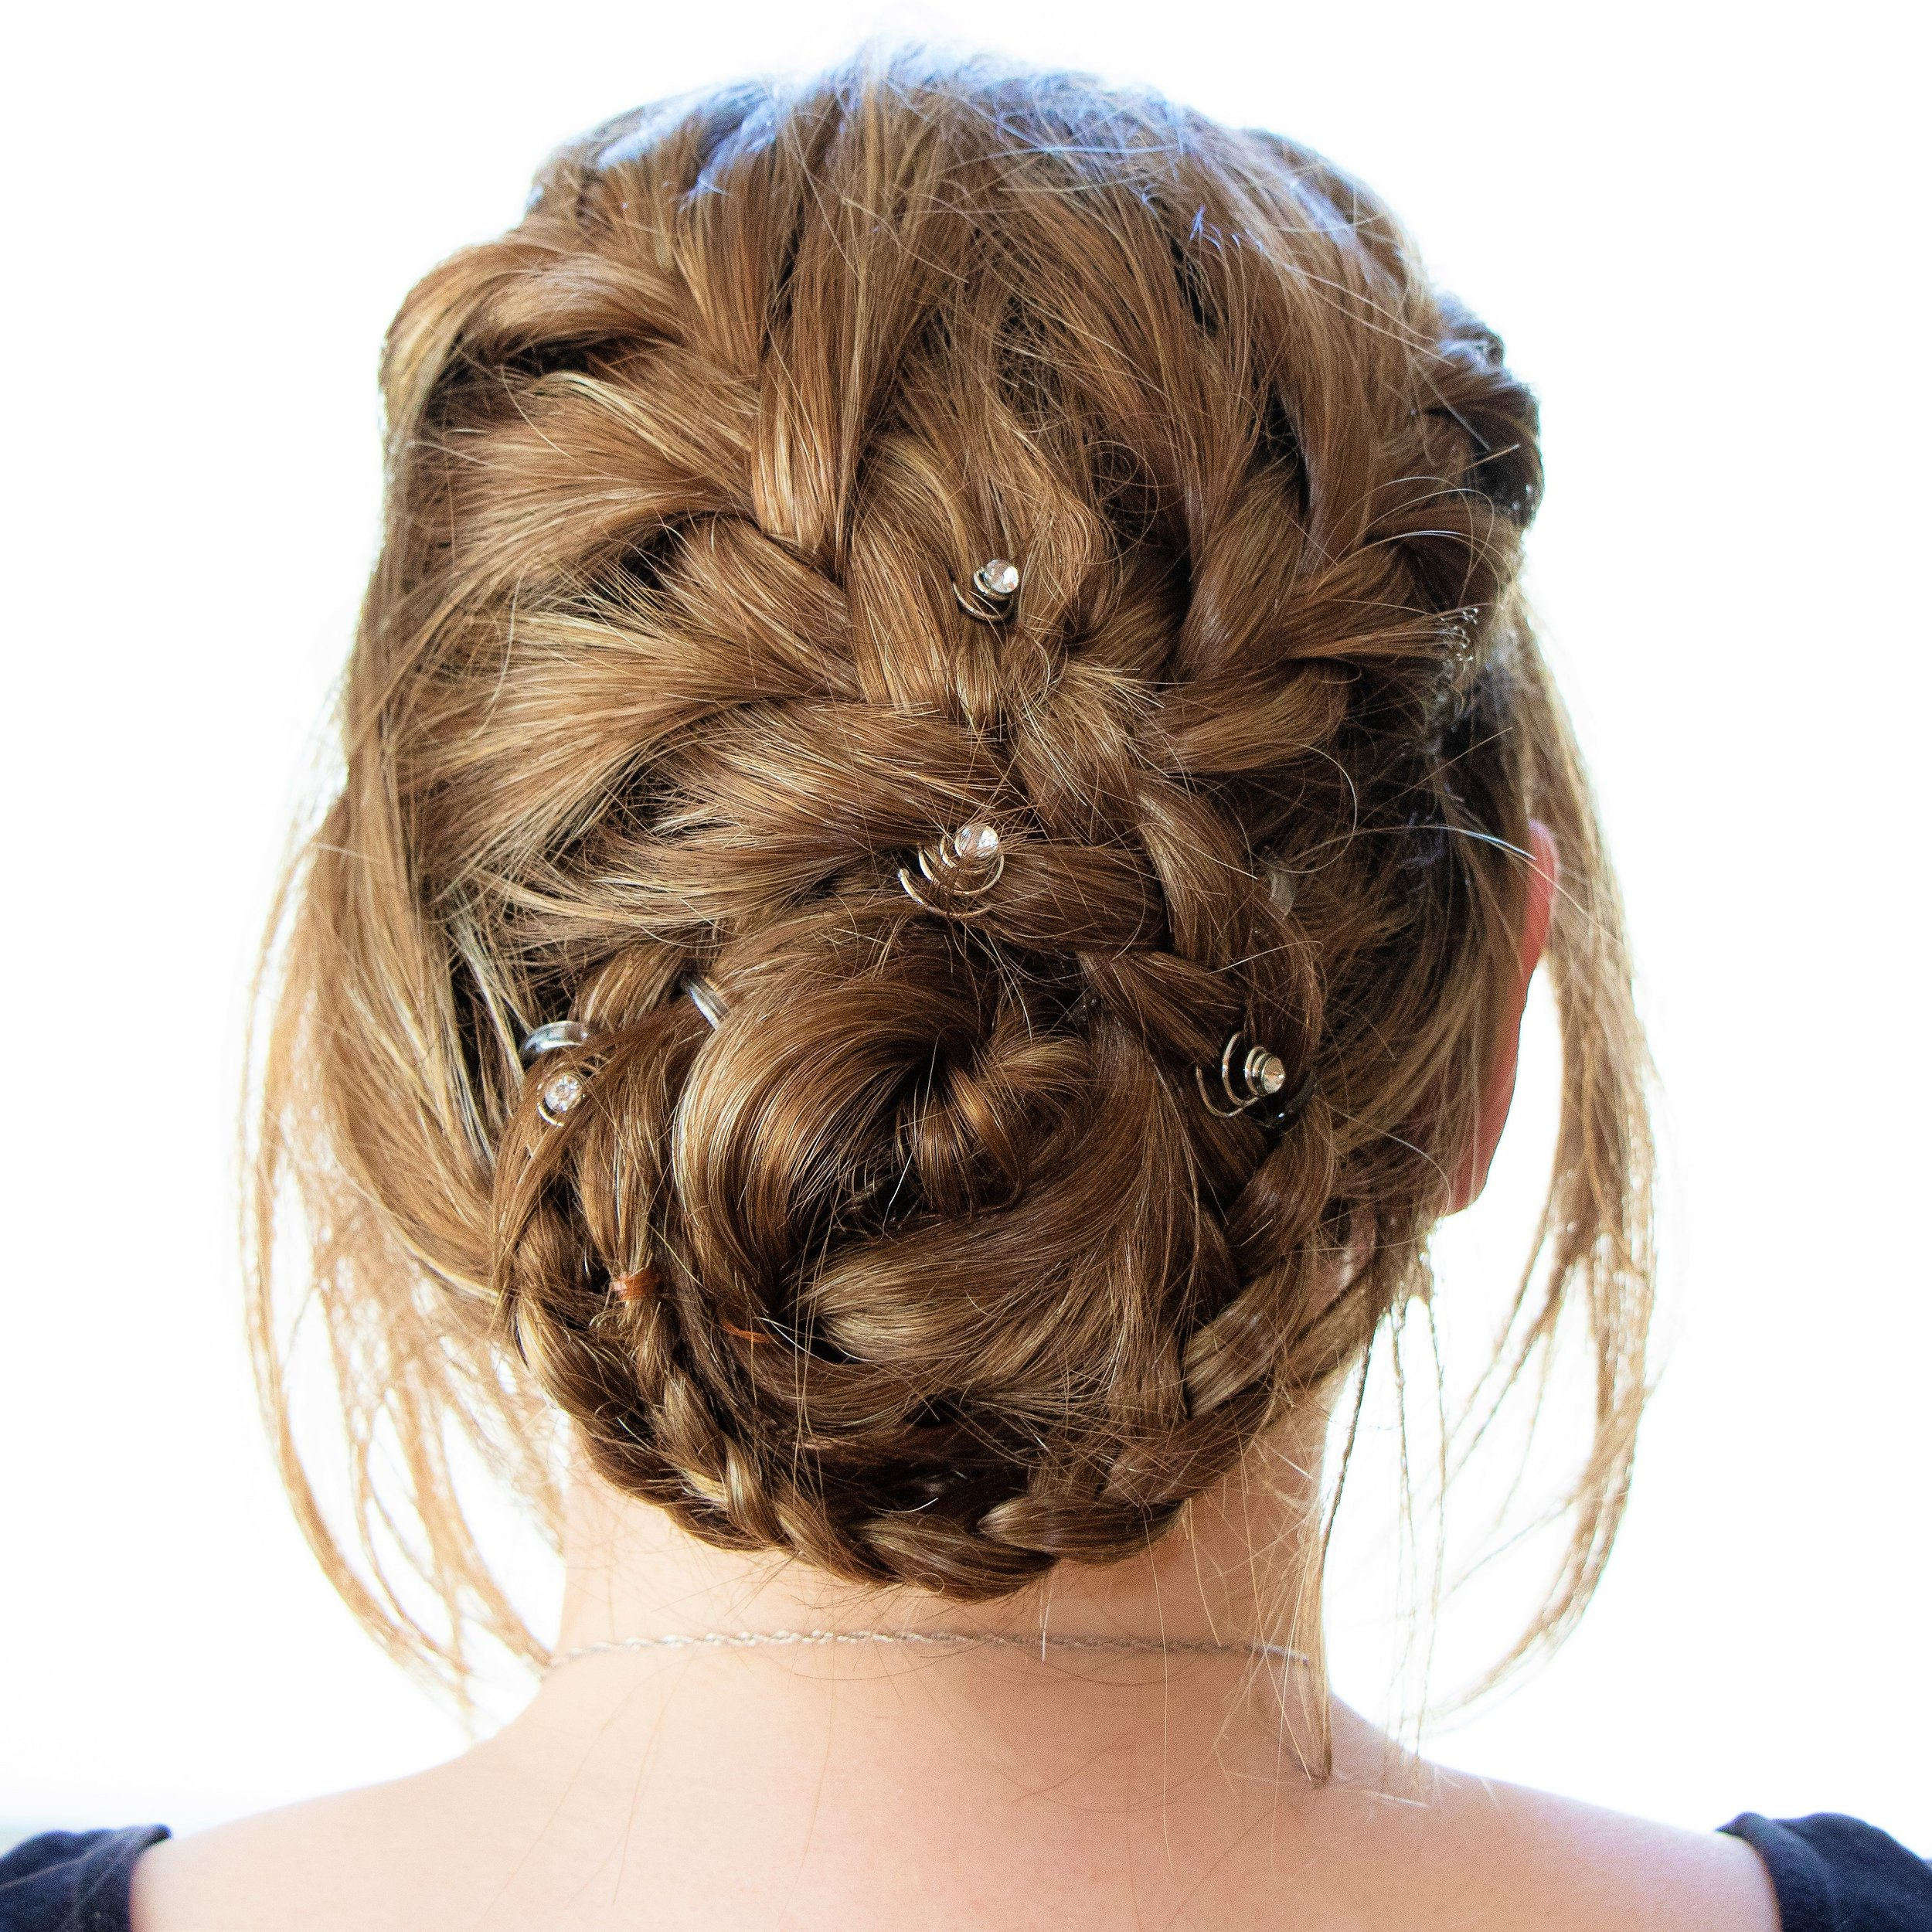 Back view of a beautiful updo bridal style. One of many services offered.